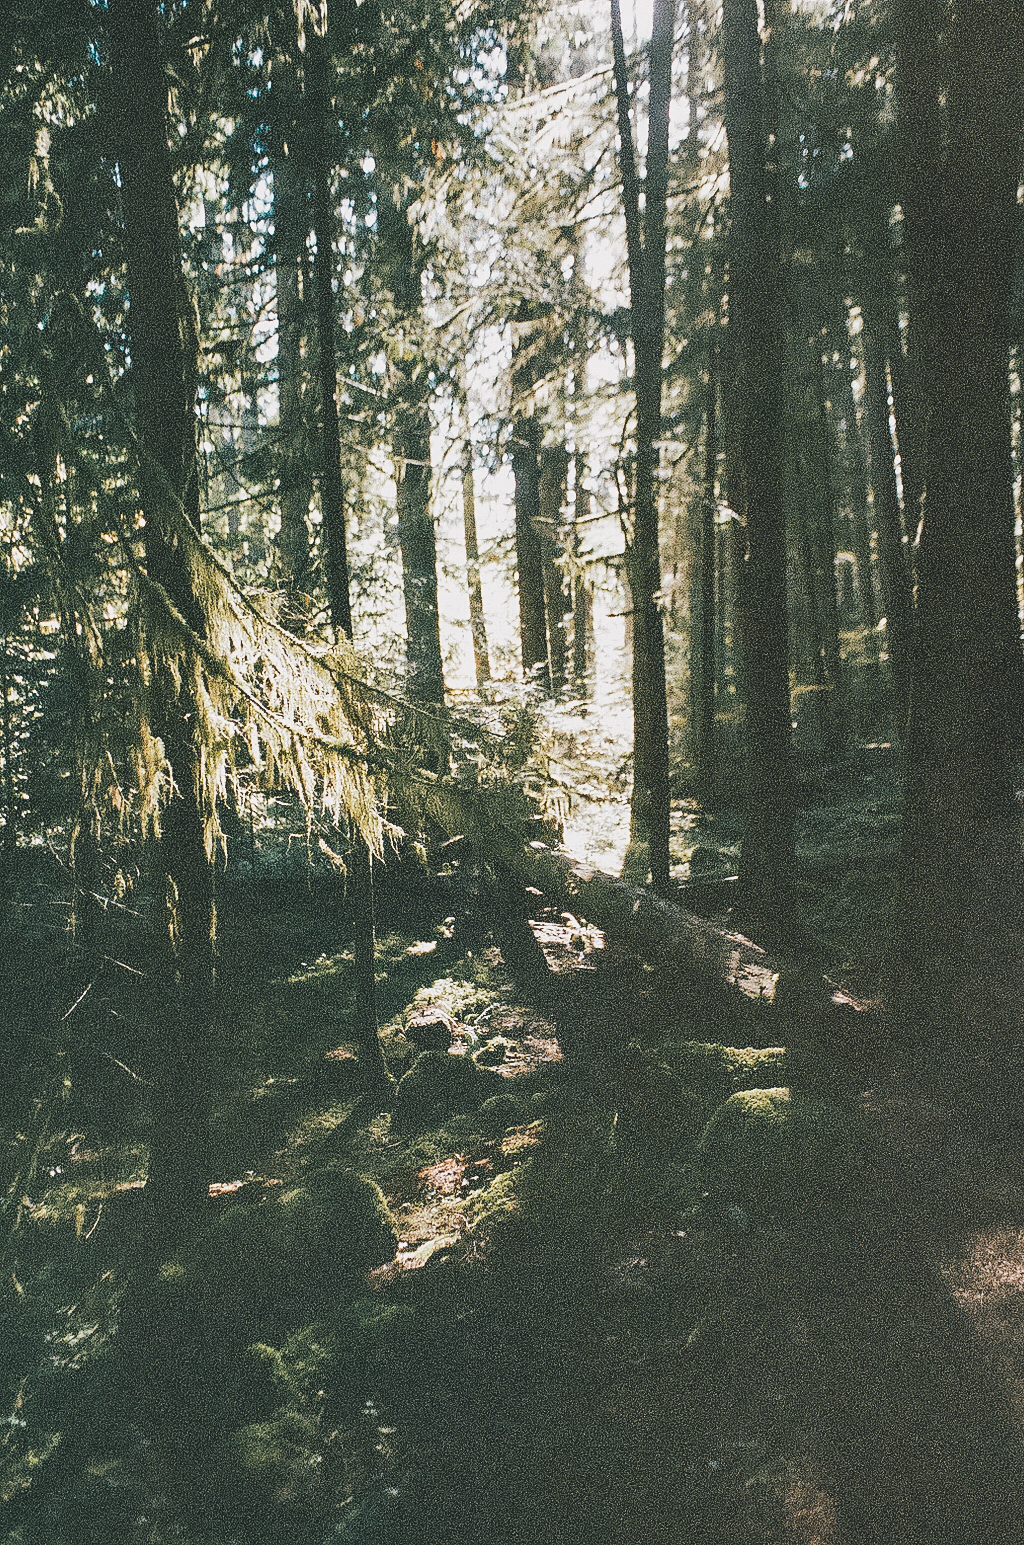 oregon-woods-73460013.jpg